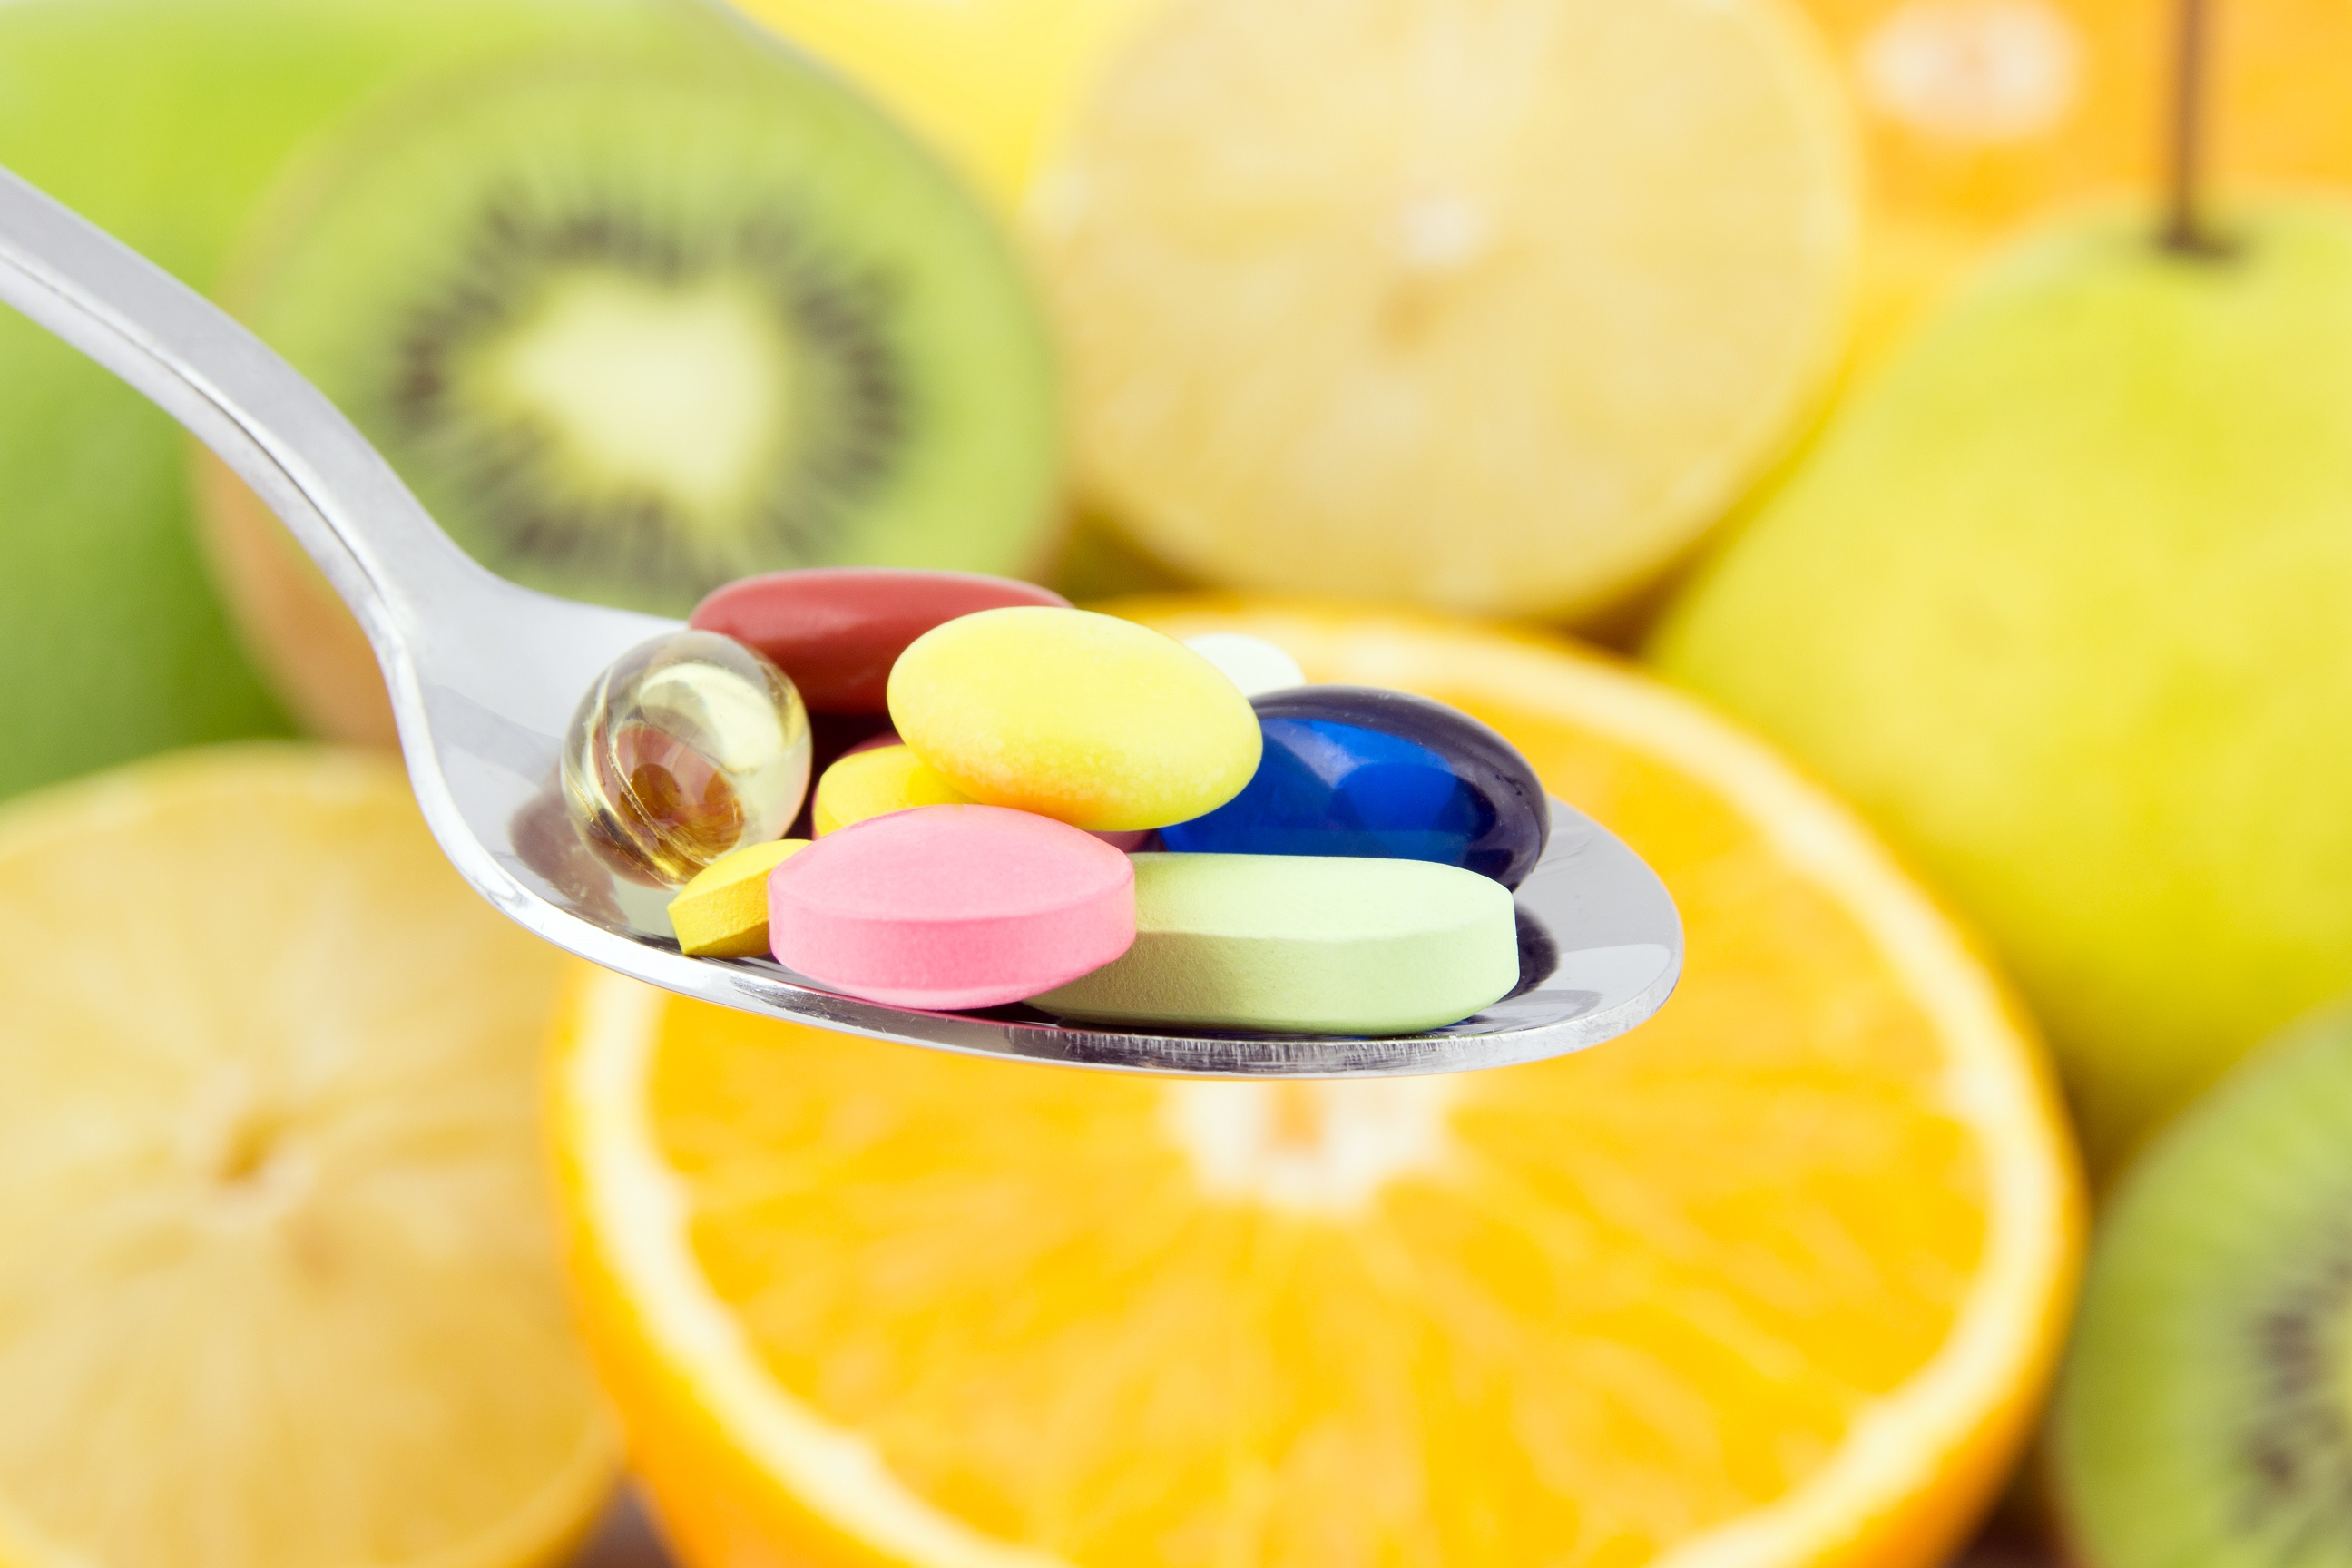 Spoon full of colorful pills against the background of fresh fruits